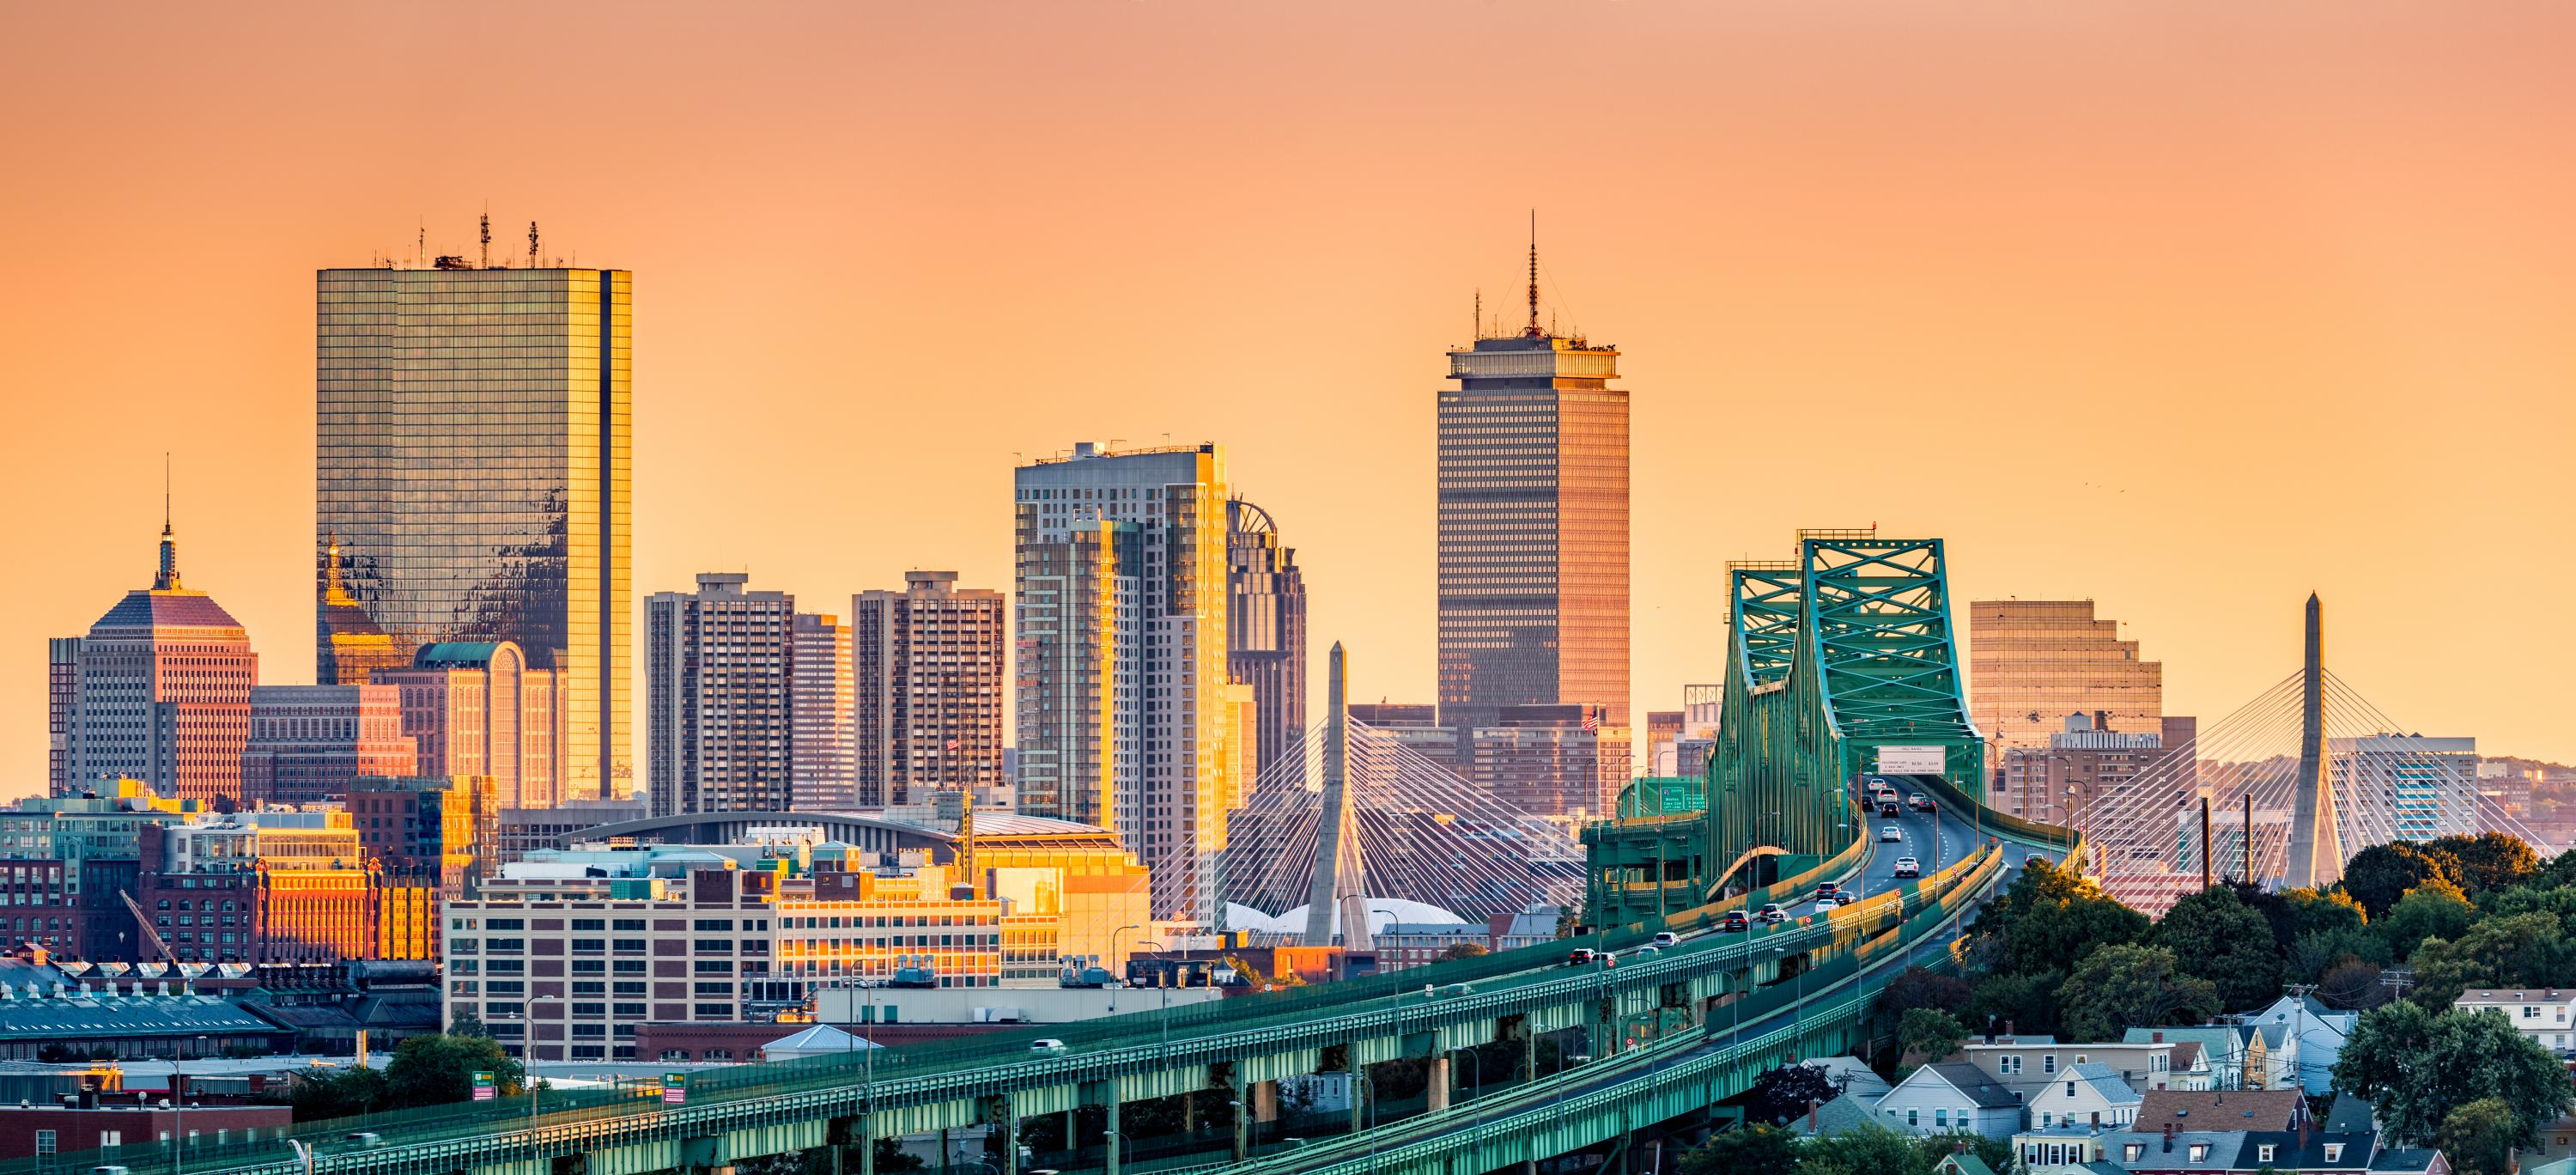 Tobin Bridge and Boston skyline at sunset